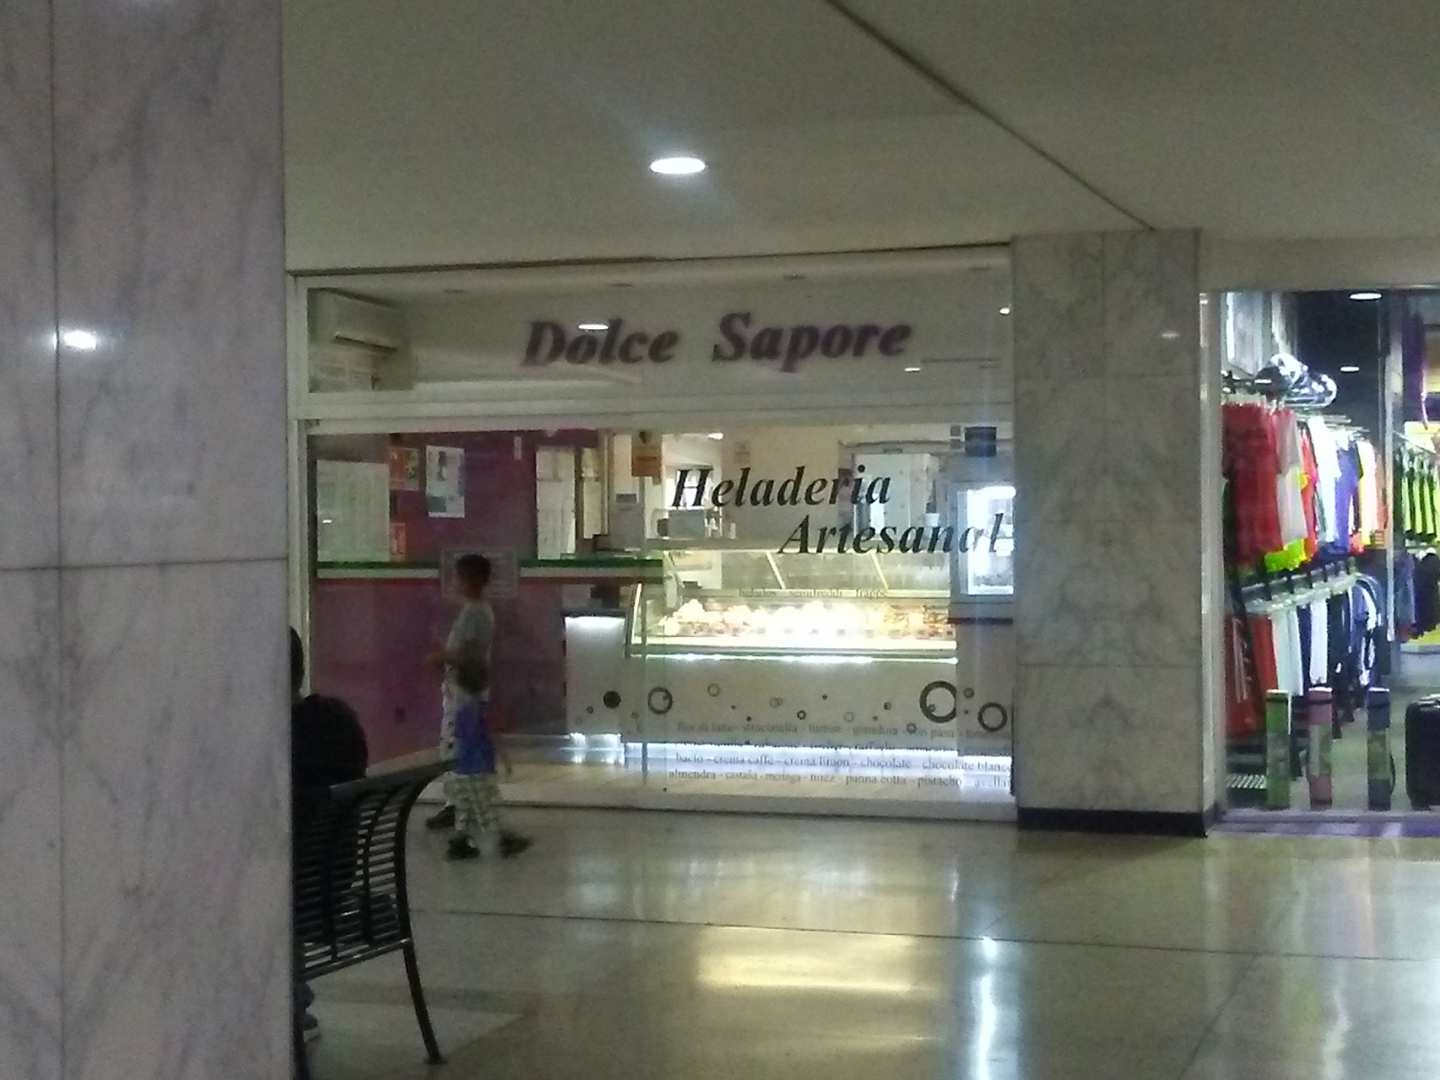 Dolce Sapore